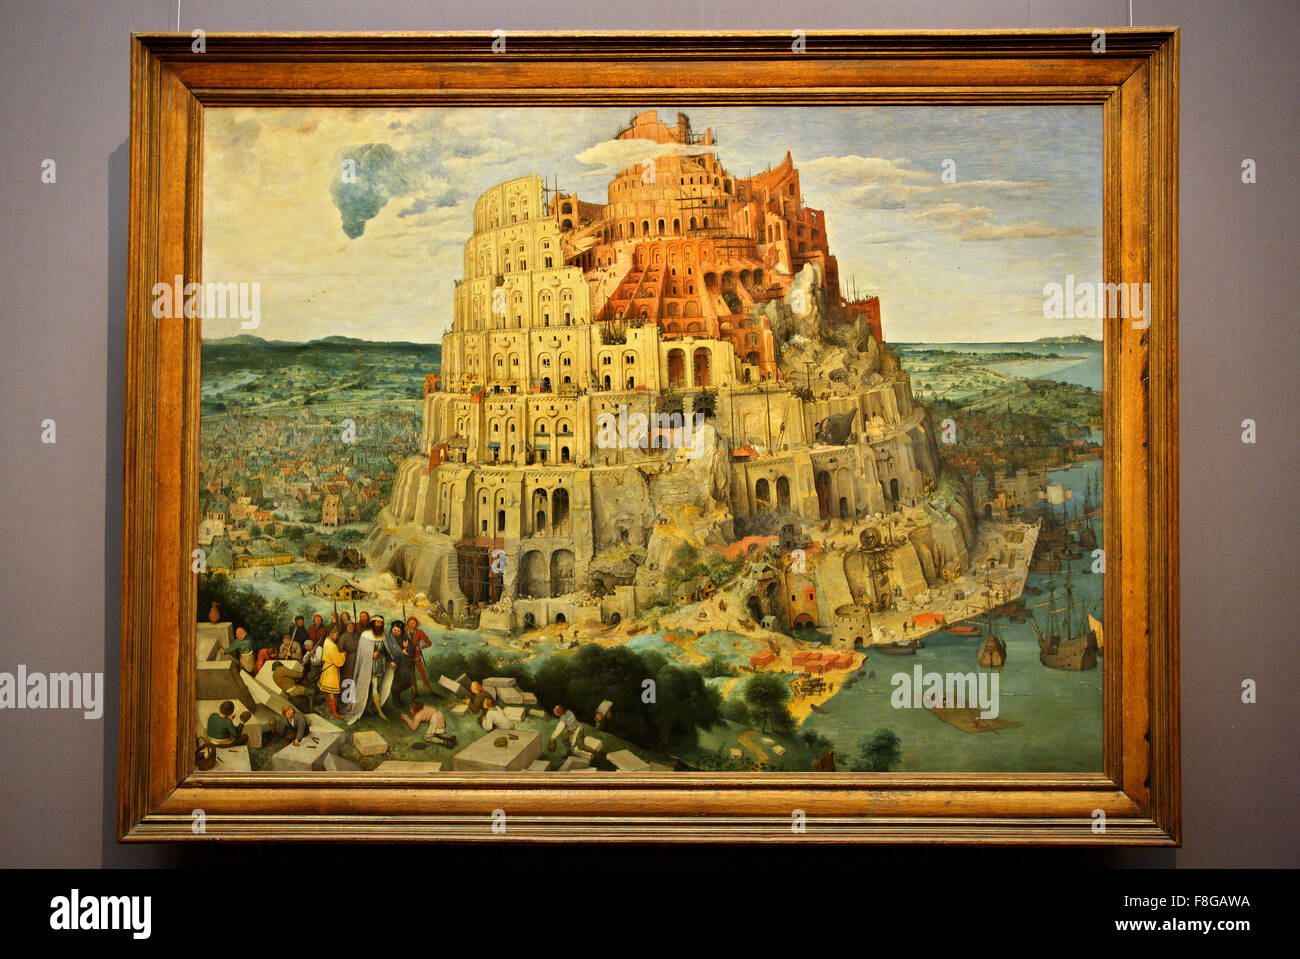 The Tower Of Babel By Pieter Bruegel The Elder In The Art History Stock Photo Alamy